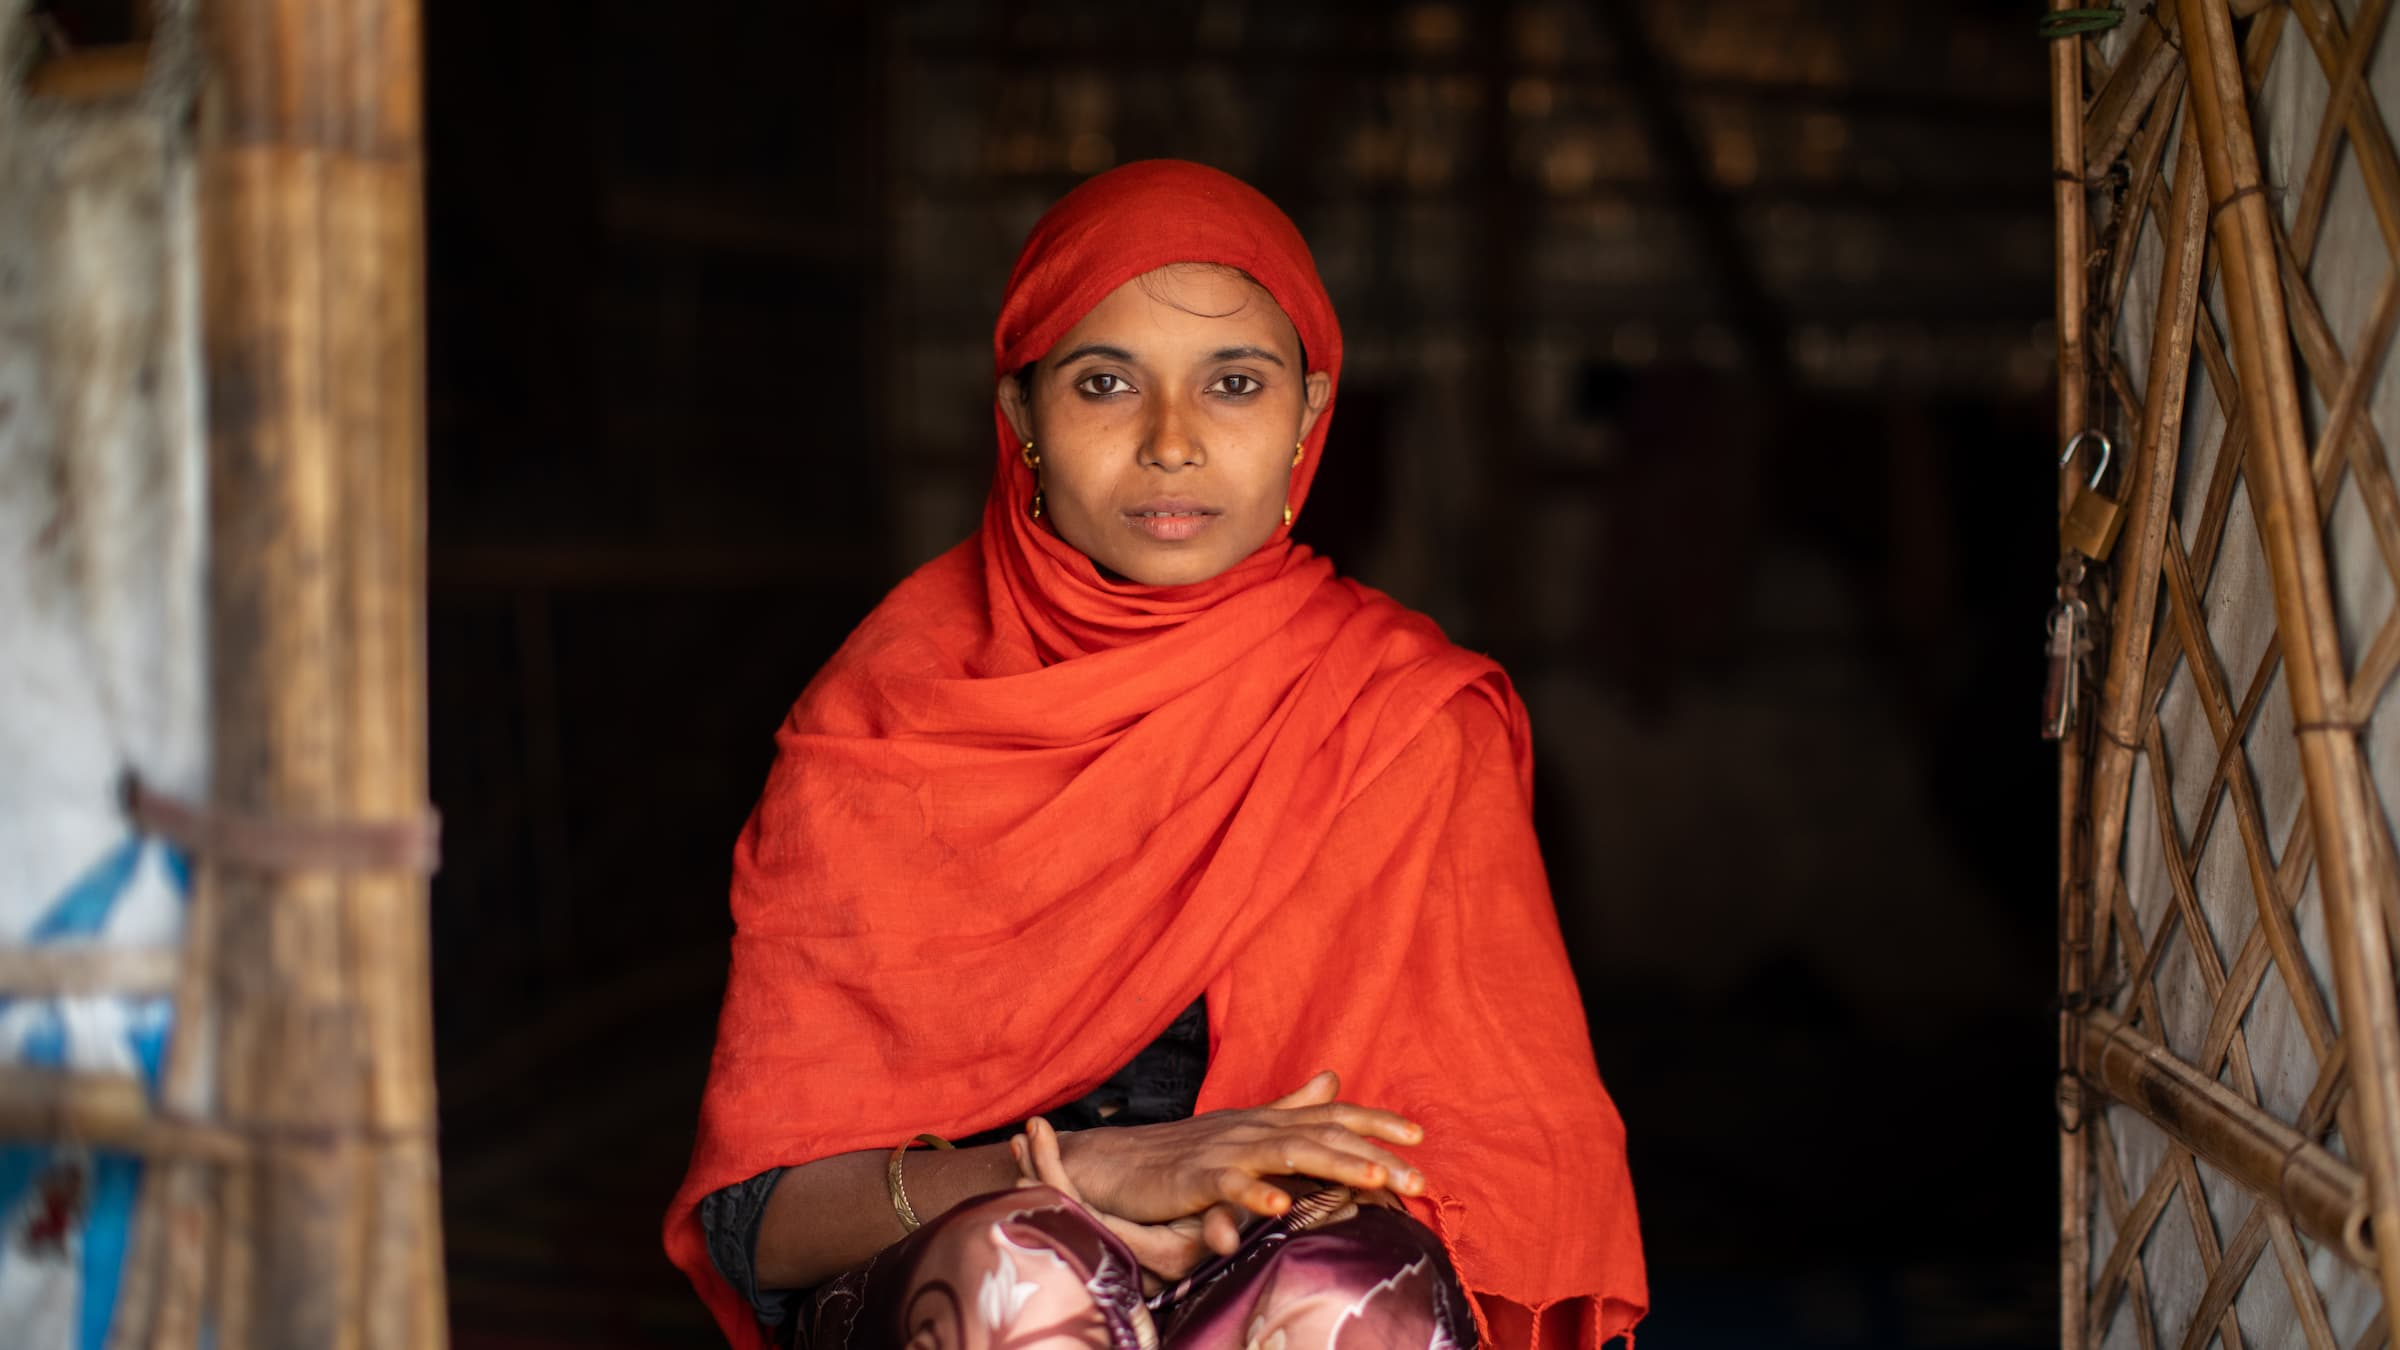 Bangladesh. Rofiqua Begum, a refugee in Kutupalong camp in Cox's Bazar, Bangladesh, sits in front of the shelter where she lives with her four children.